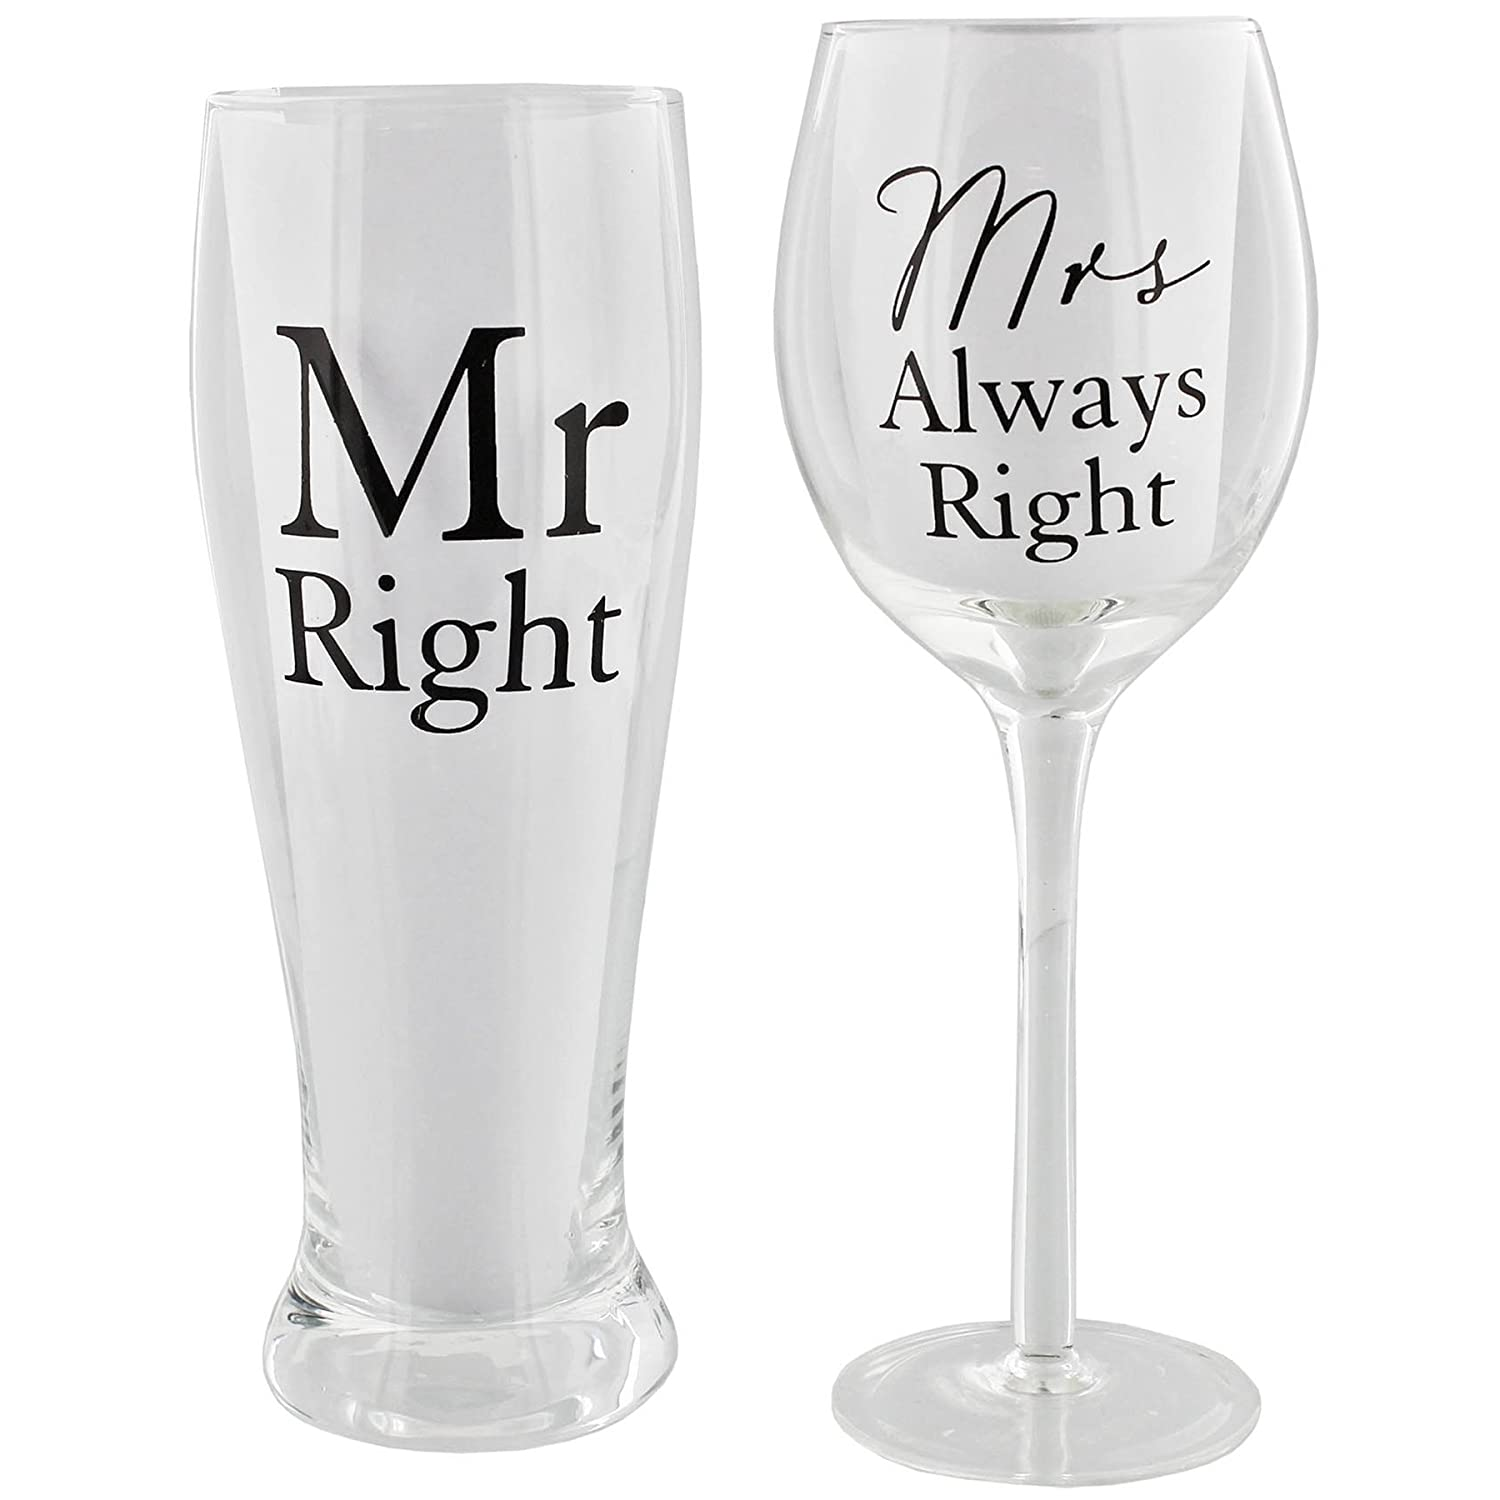 Amore Mr Right and Mrs Always Right by Amore Pint & Wine Glass Gift Set Widdop & Co UKASNHKTN7317